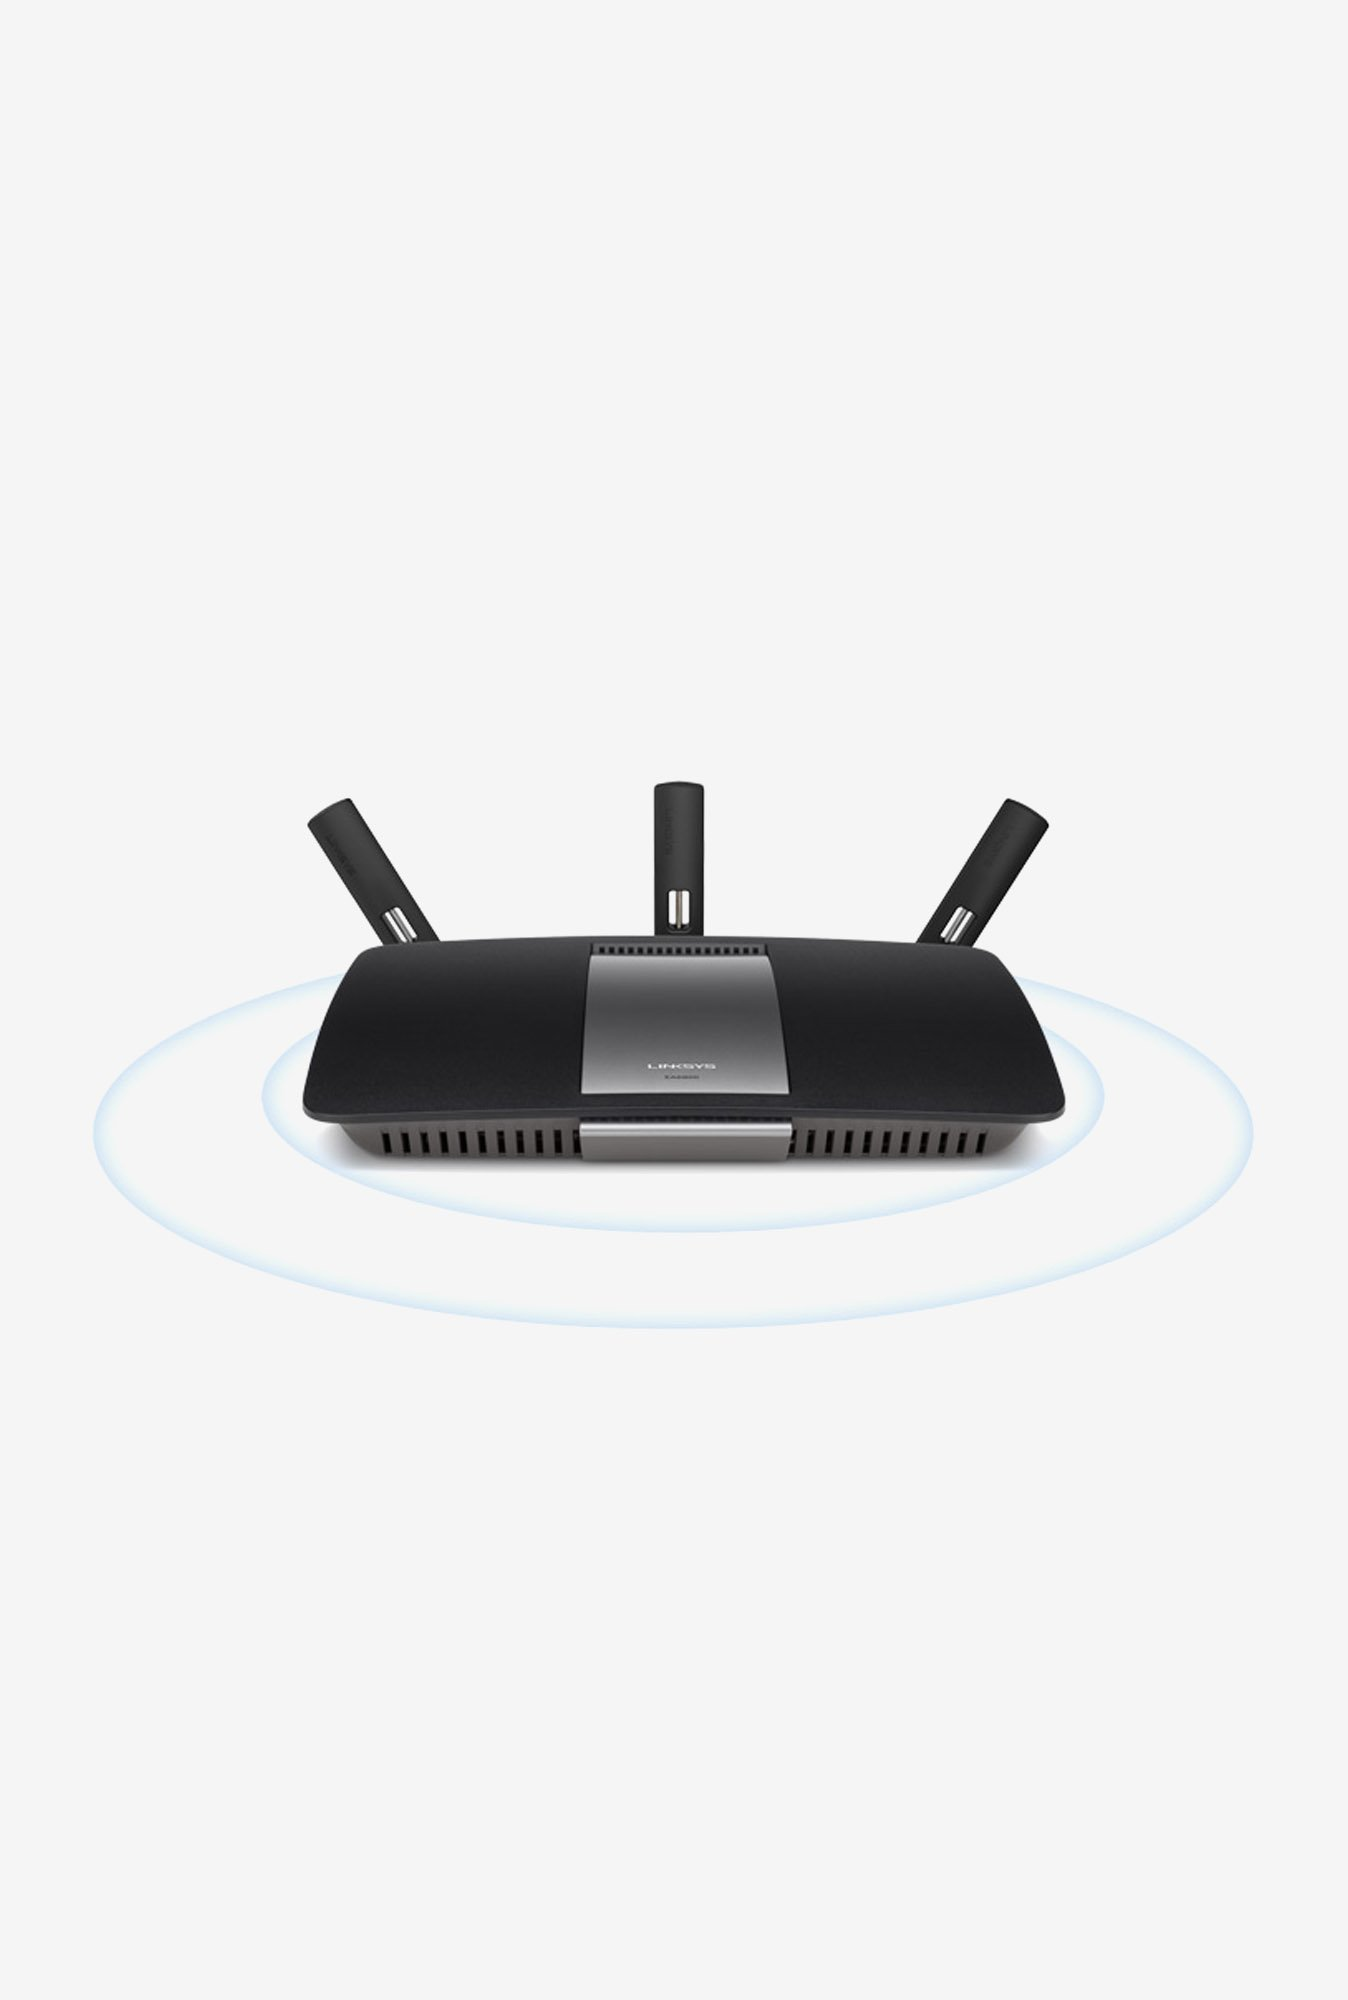 Linksys AC1900 DUAL-BAND EA6900-AP Wireless Router Black